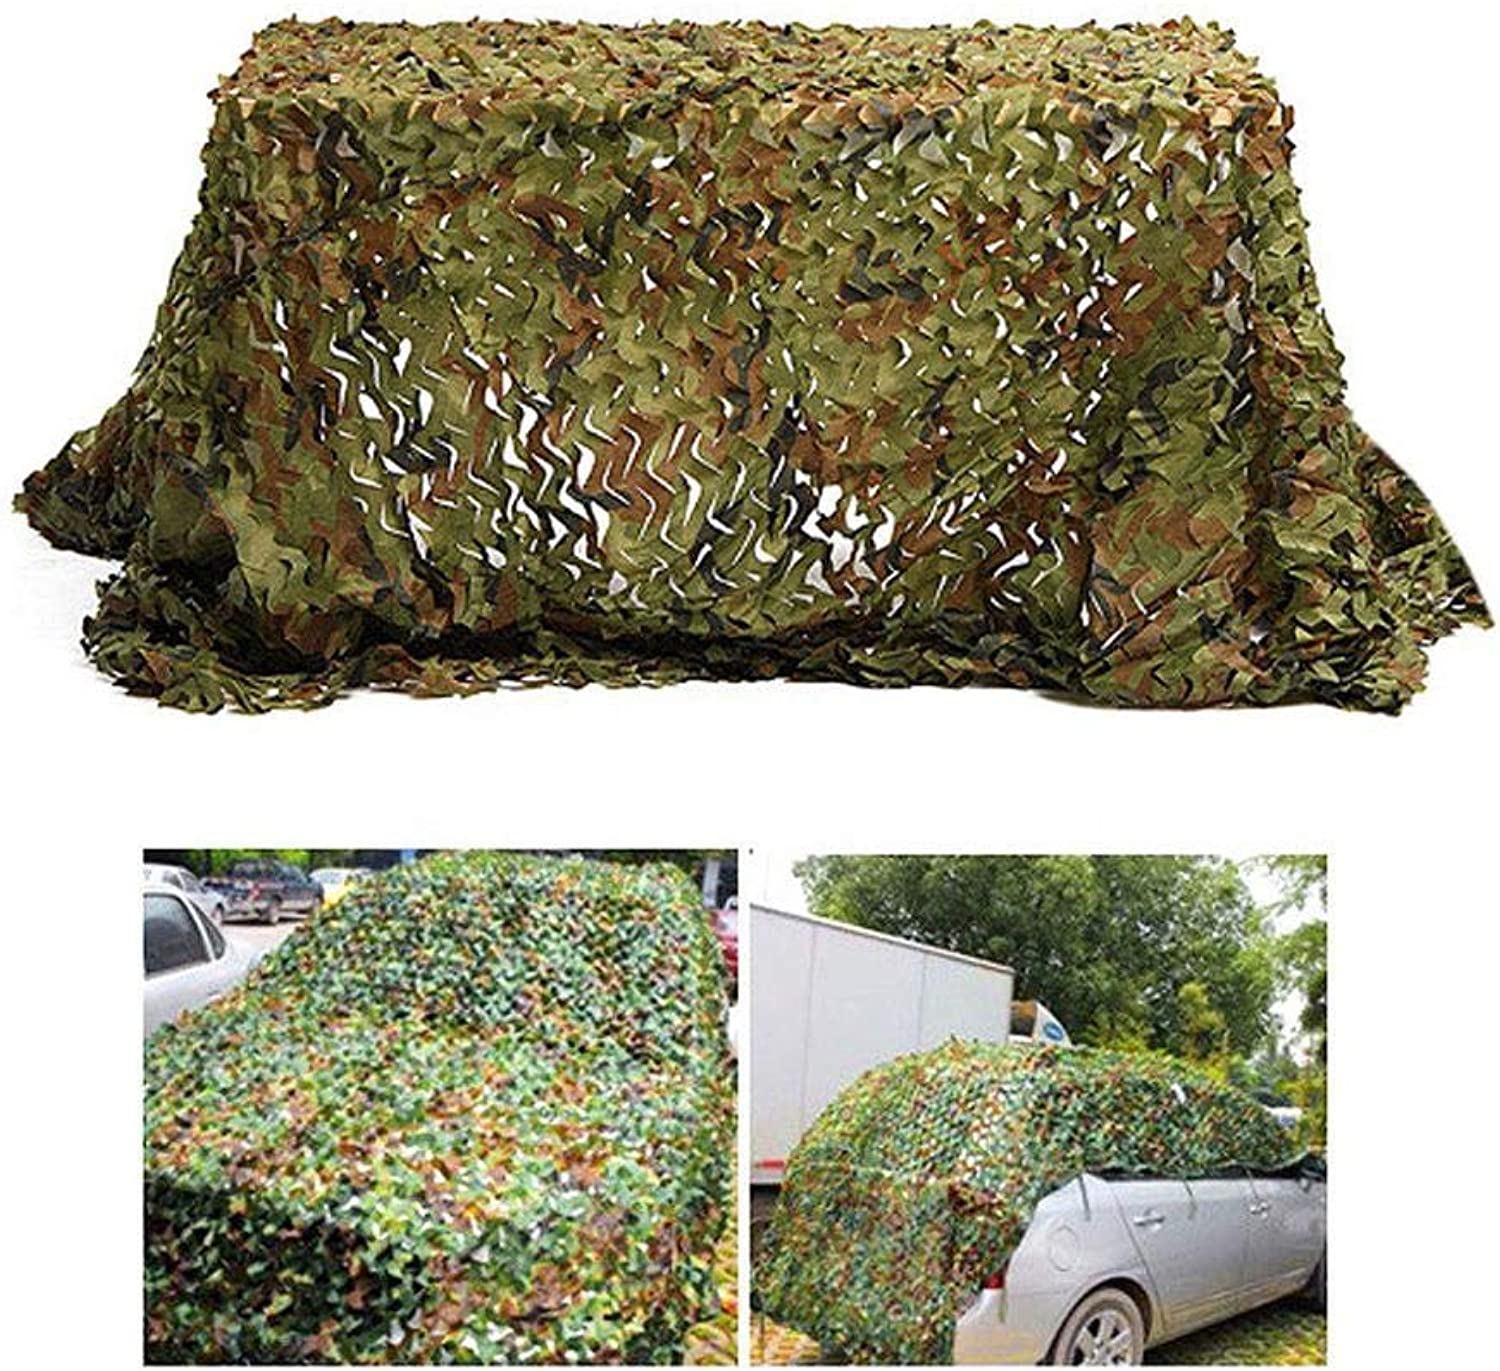 Camouflage Netting Sunshade Camo Net Blinds for Hiding Shooting Hunting Privacy Balcony Plant Cover Animals Photography Party Decoration